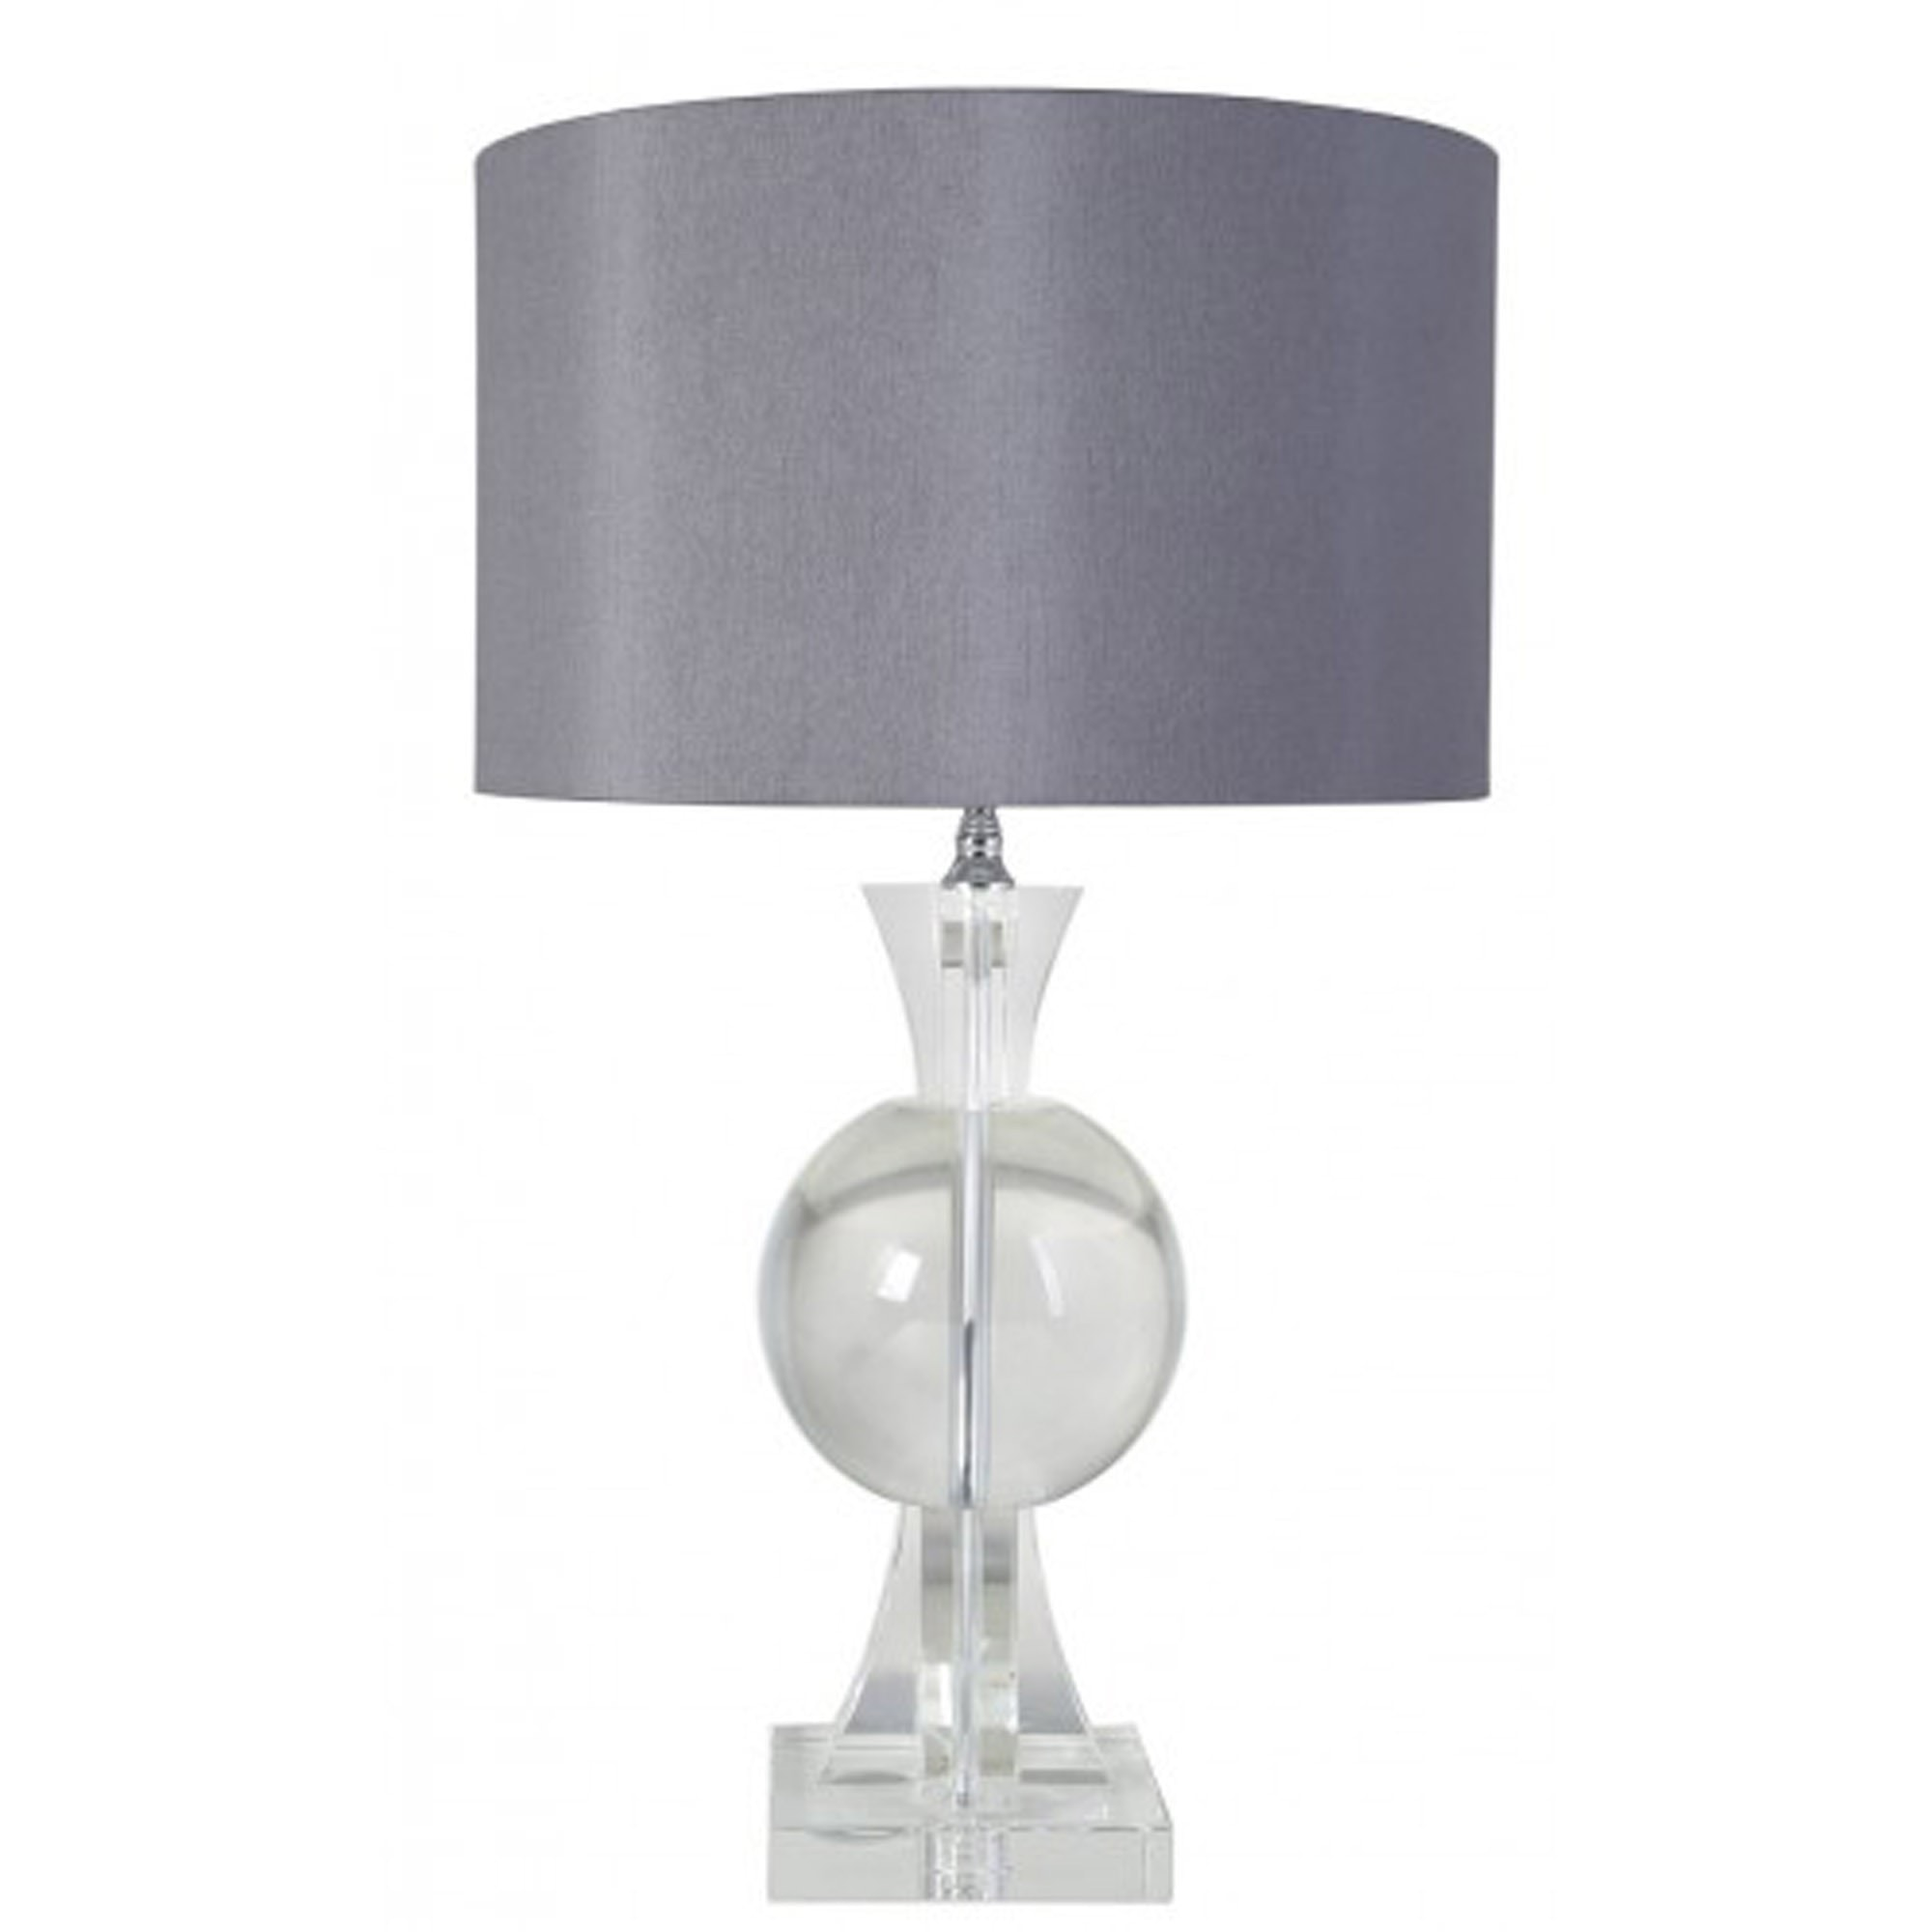 Crystal Thistle Table Lamp With Grey Shade Contemporary Table Lamps